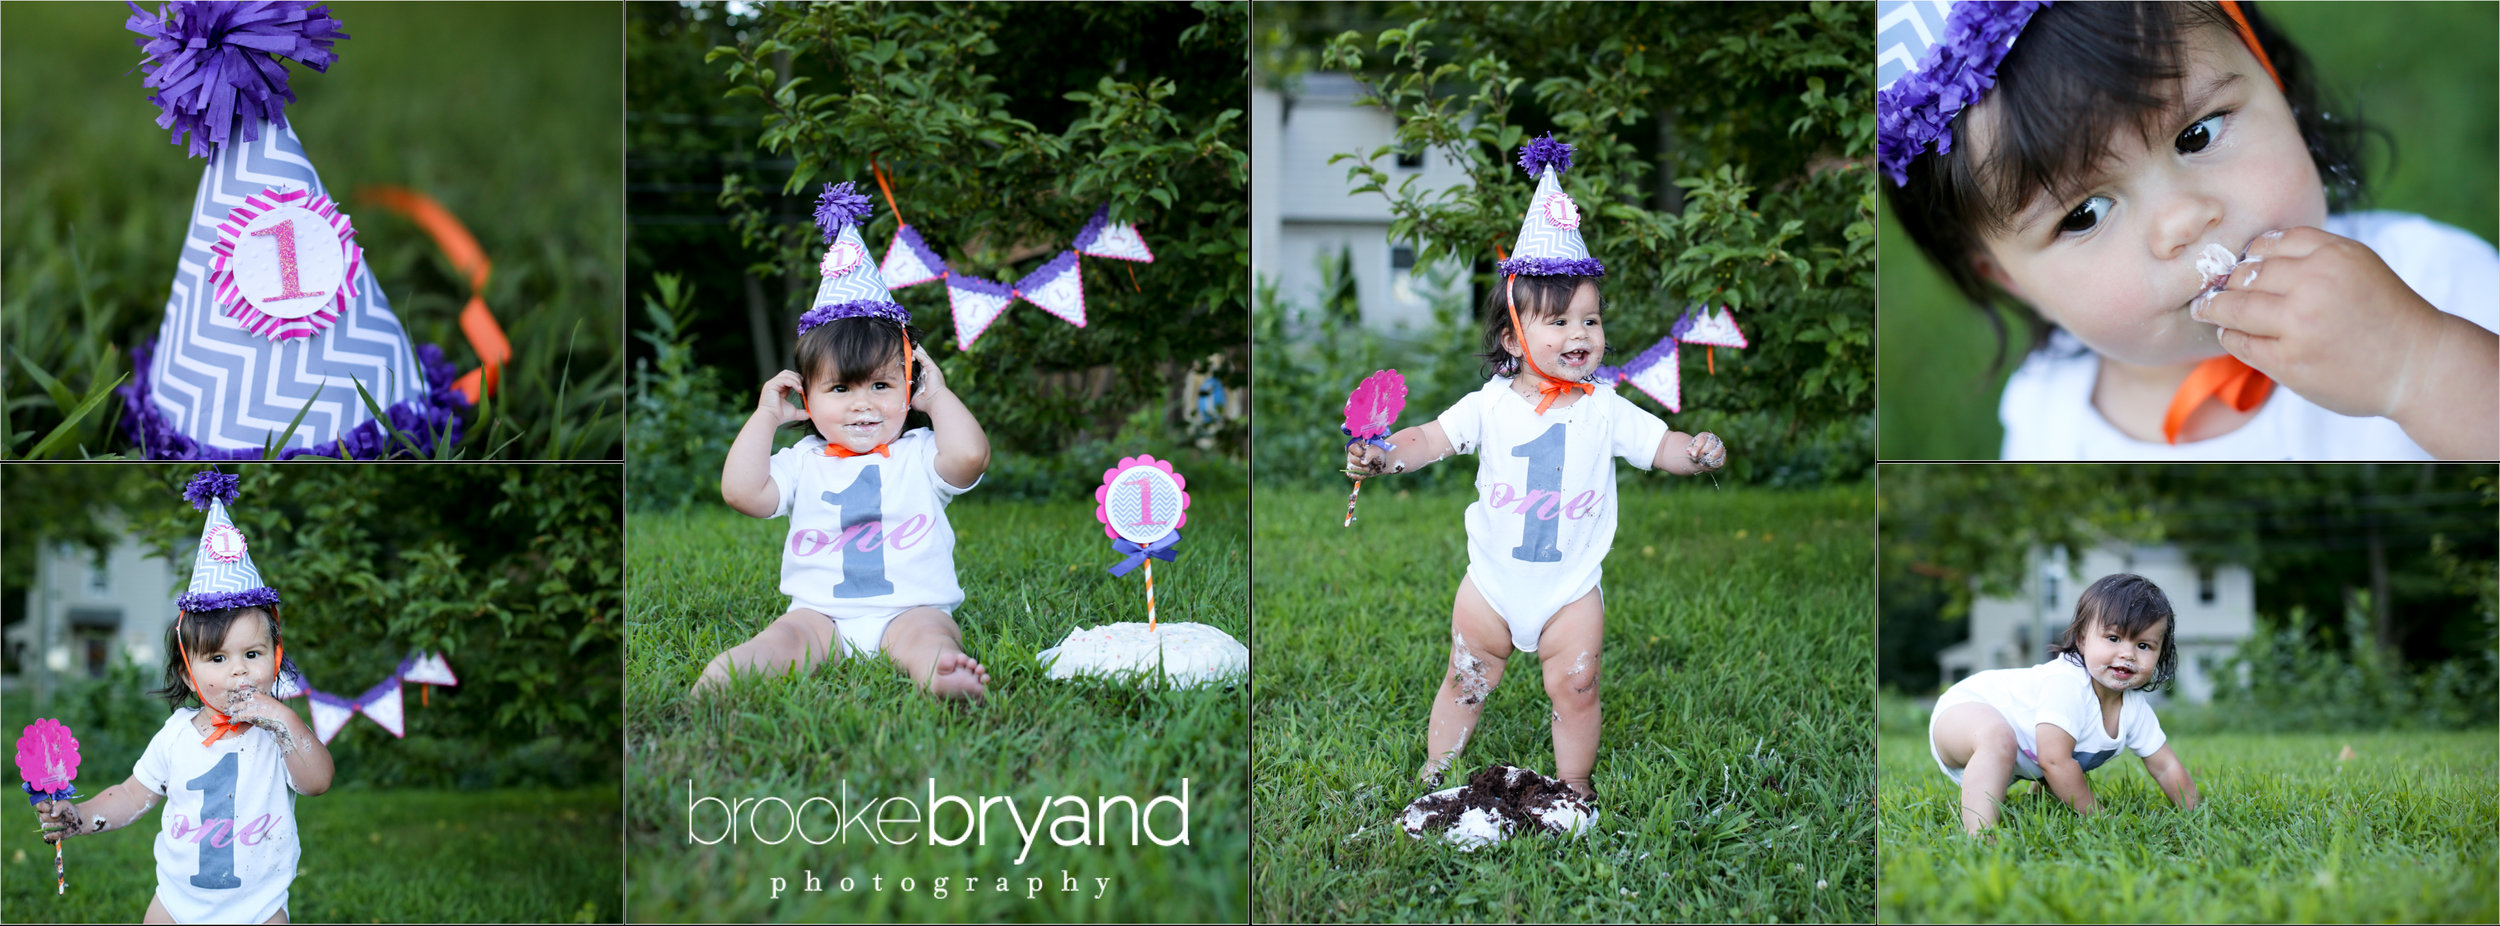 6-up-lily-brooke-bryand-photography-san-francisco-cake-smash-1st-birthday-cake-smash1.jpg